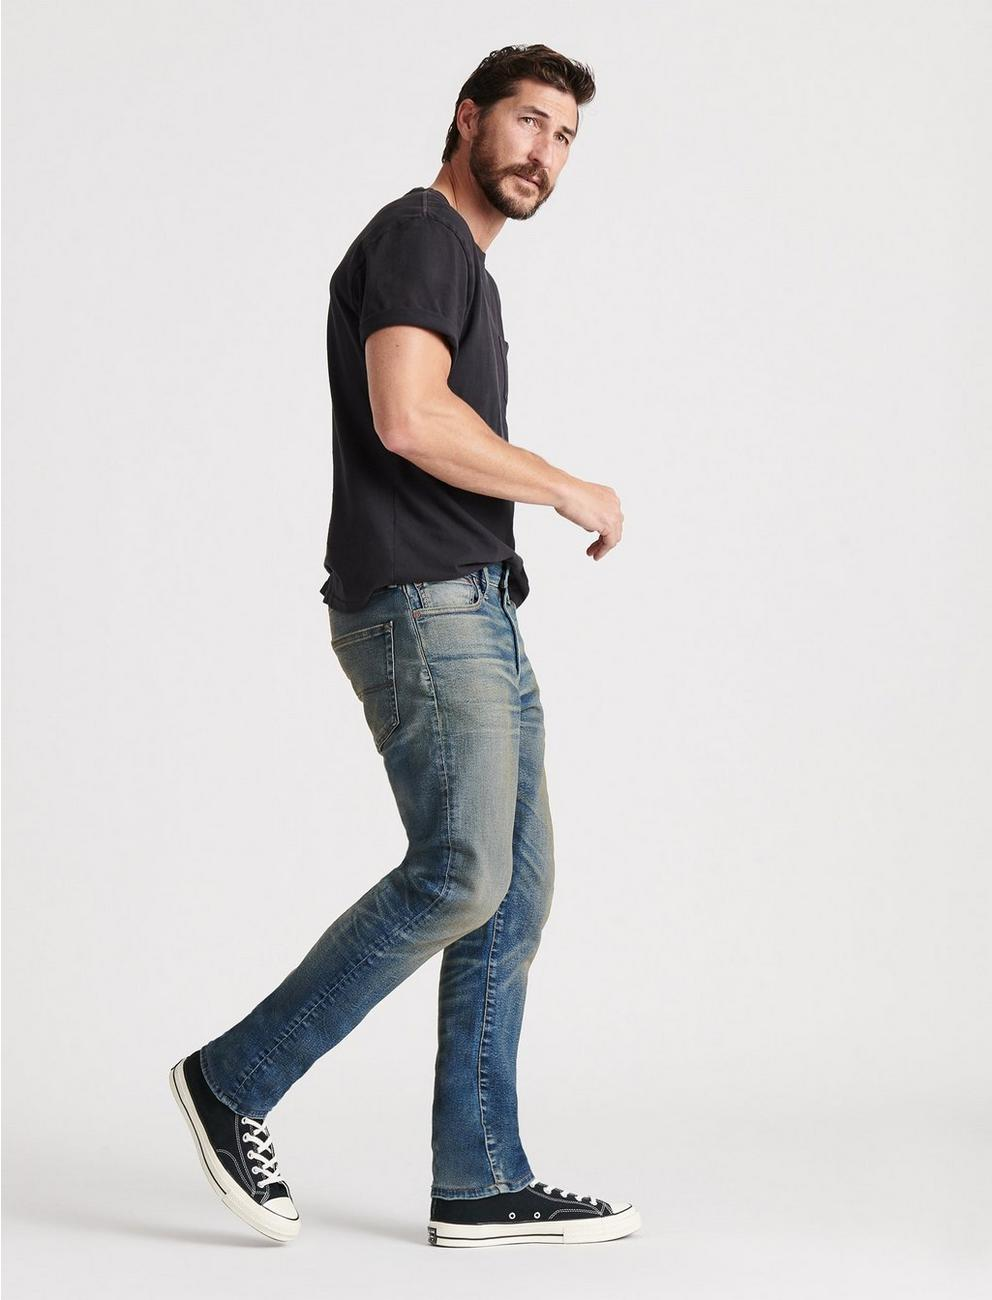 410 ATHLETIC SLIM ADVANCED STRETCH JEAN, CEDAR